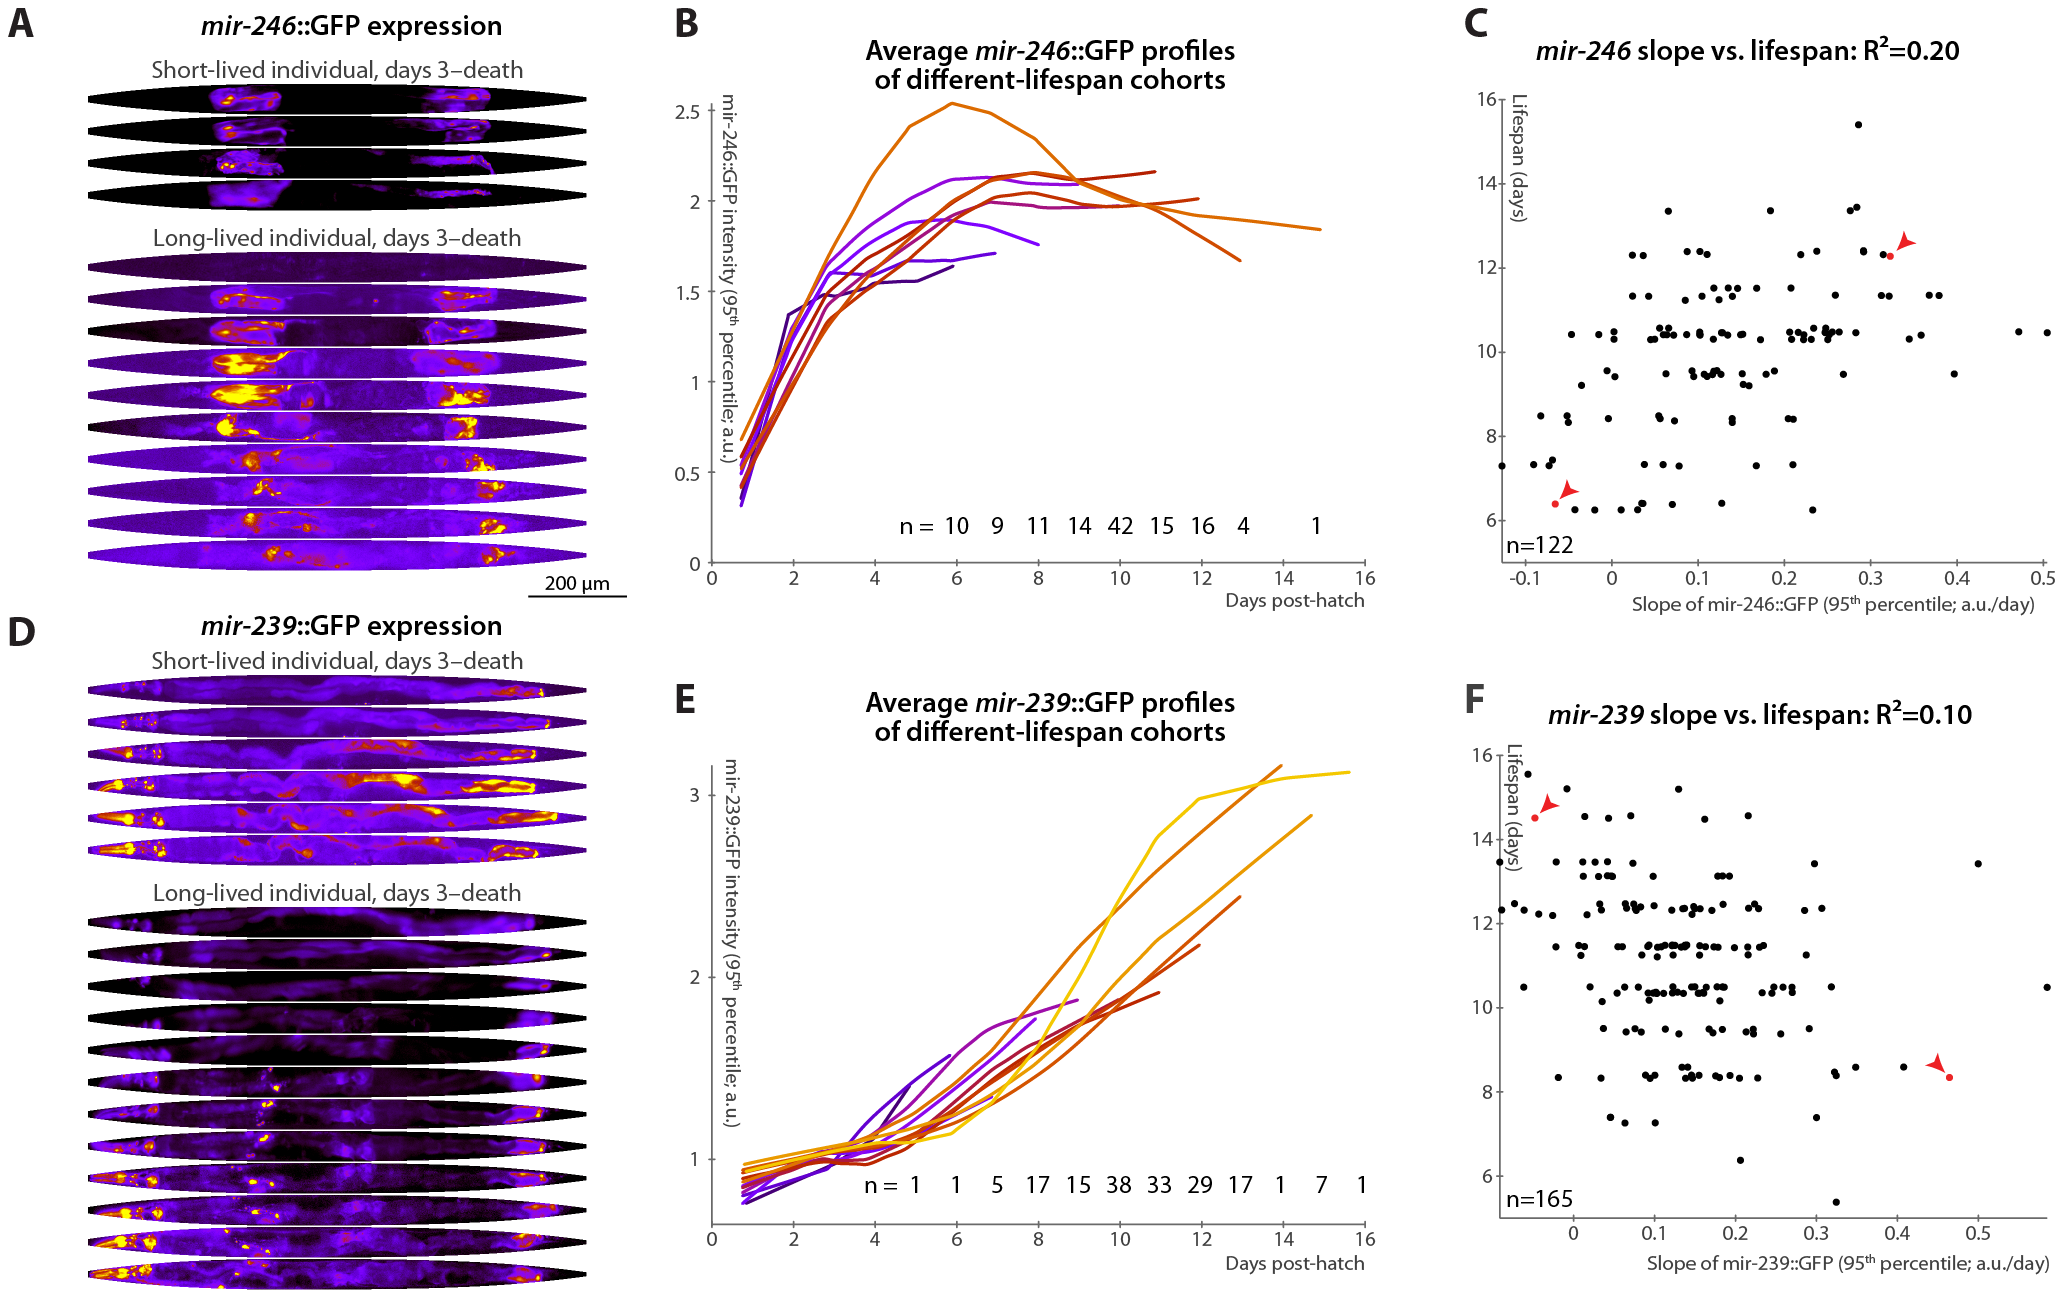 Changes in <i>mir-246</i>::GFP and <i>mir-239</i>::GFP expression over time predict longevity.